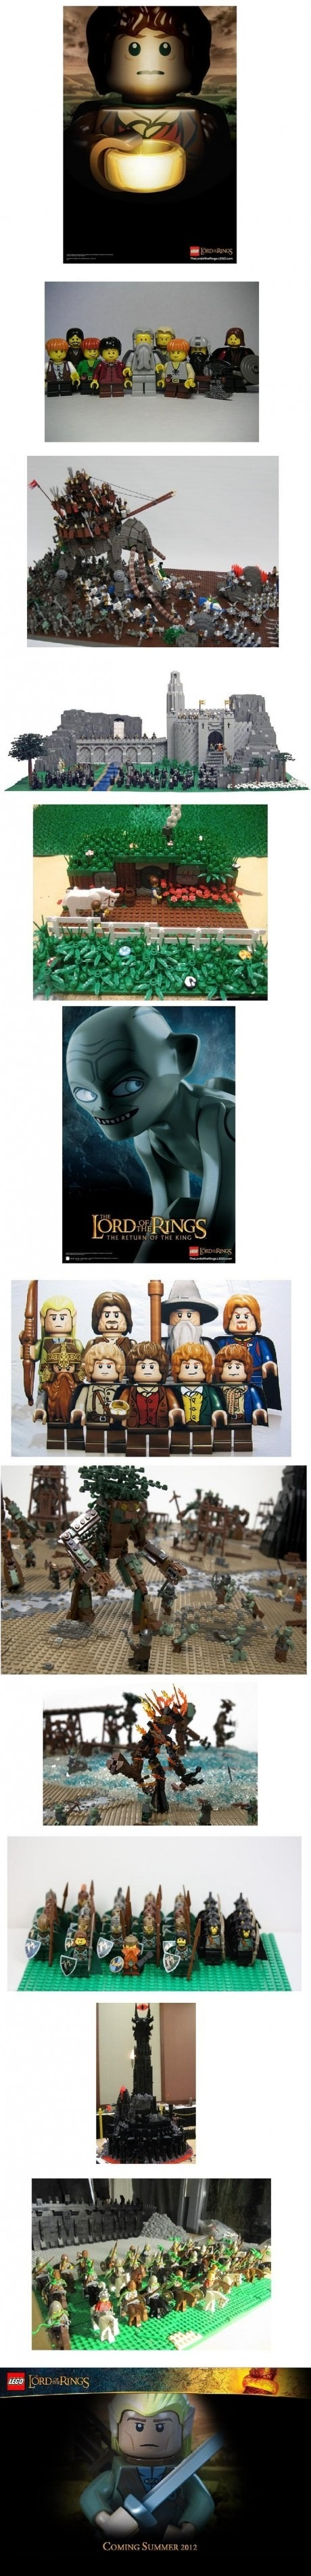 Lego Lord of the Rings  #lego #lordoftherings #movie #legomovie